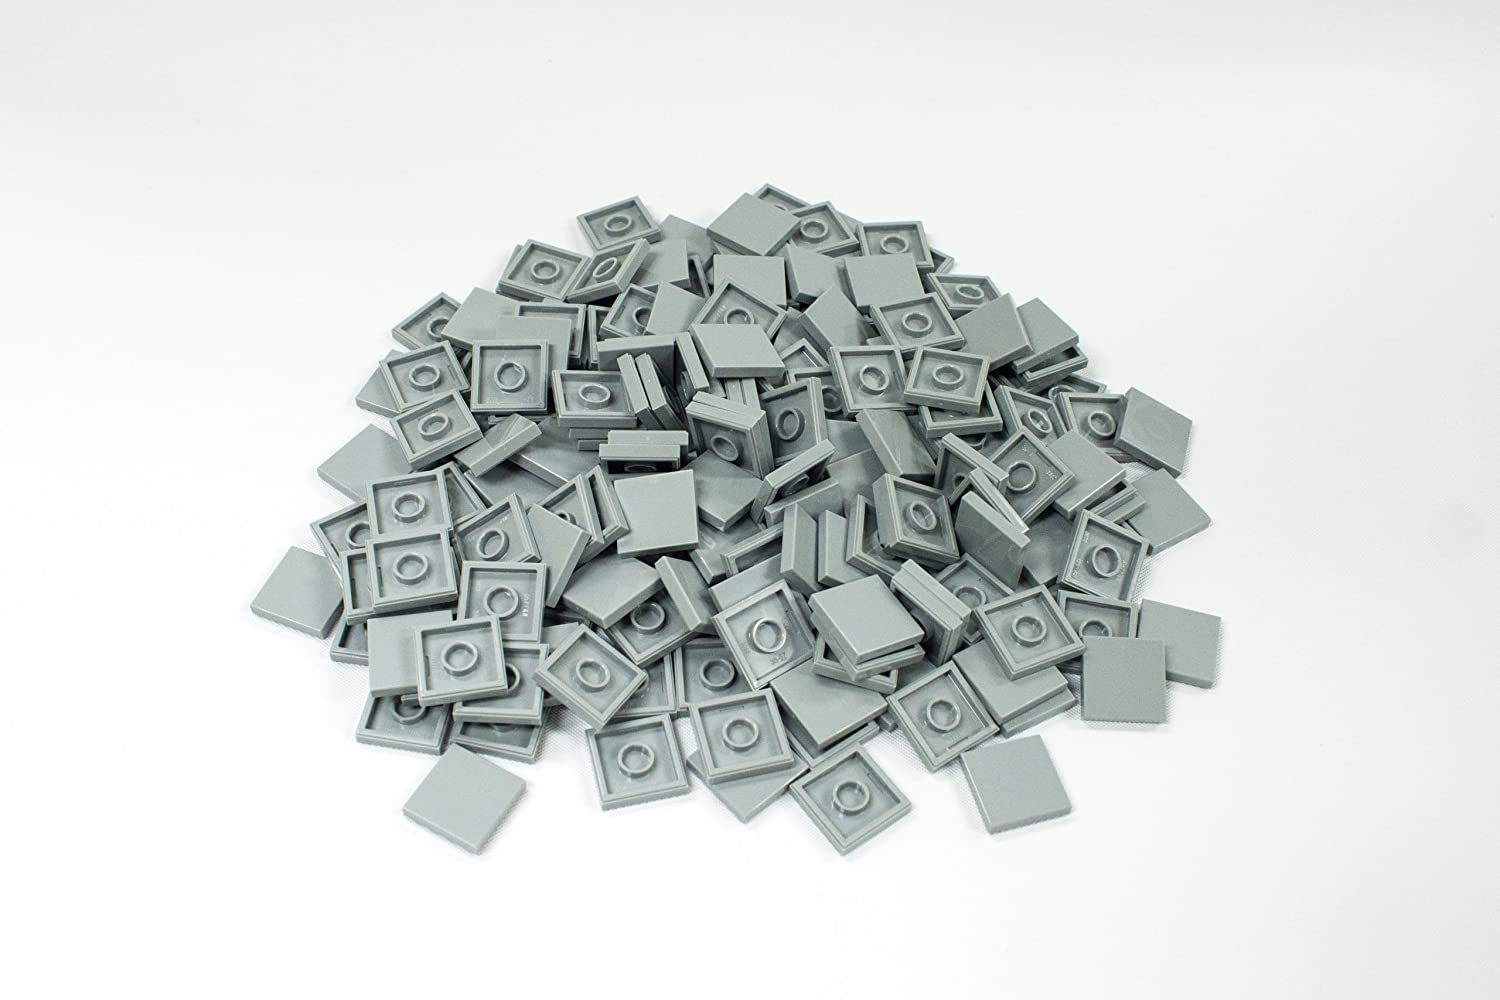 200x Lego Medium Stone Grey (Light Grey) 2x2 Flat Tiles Super Pack